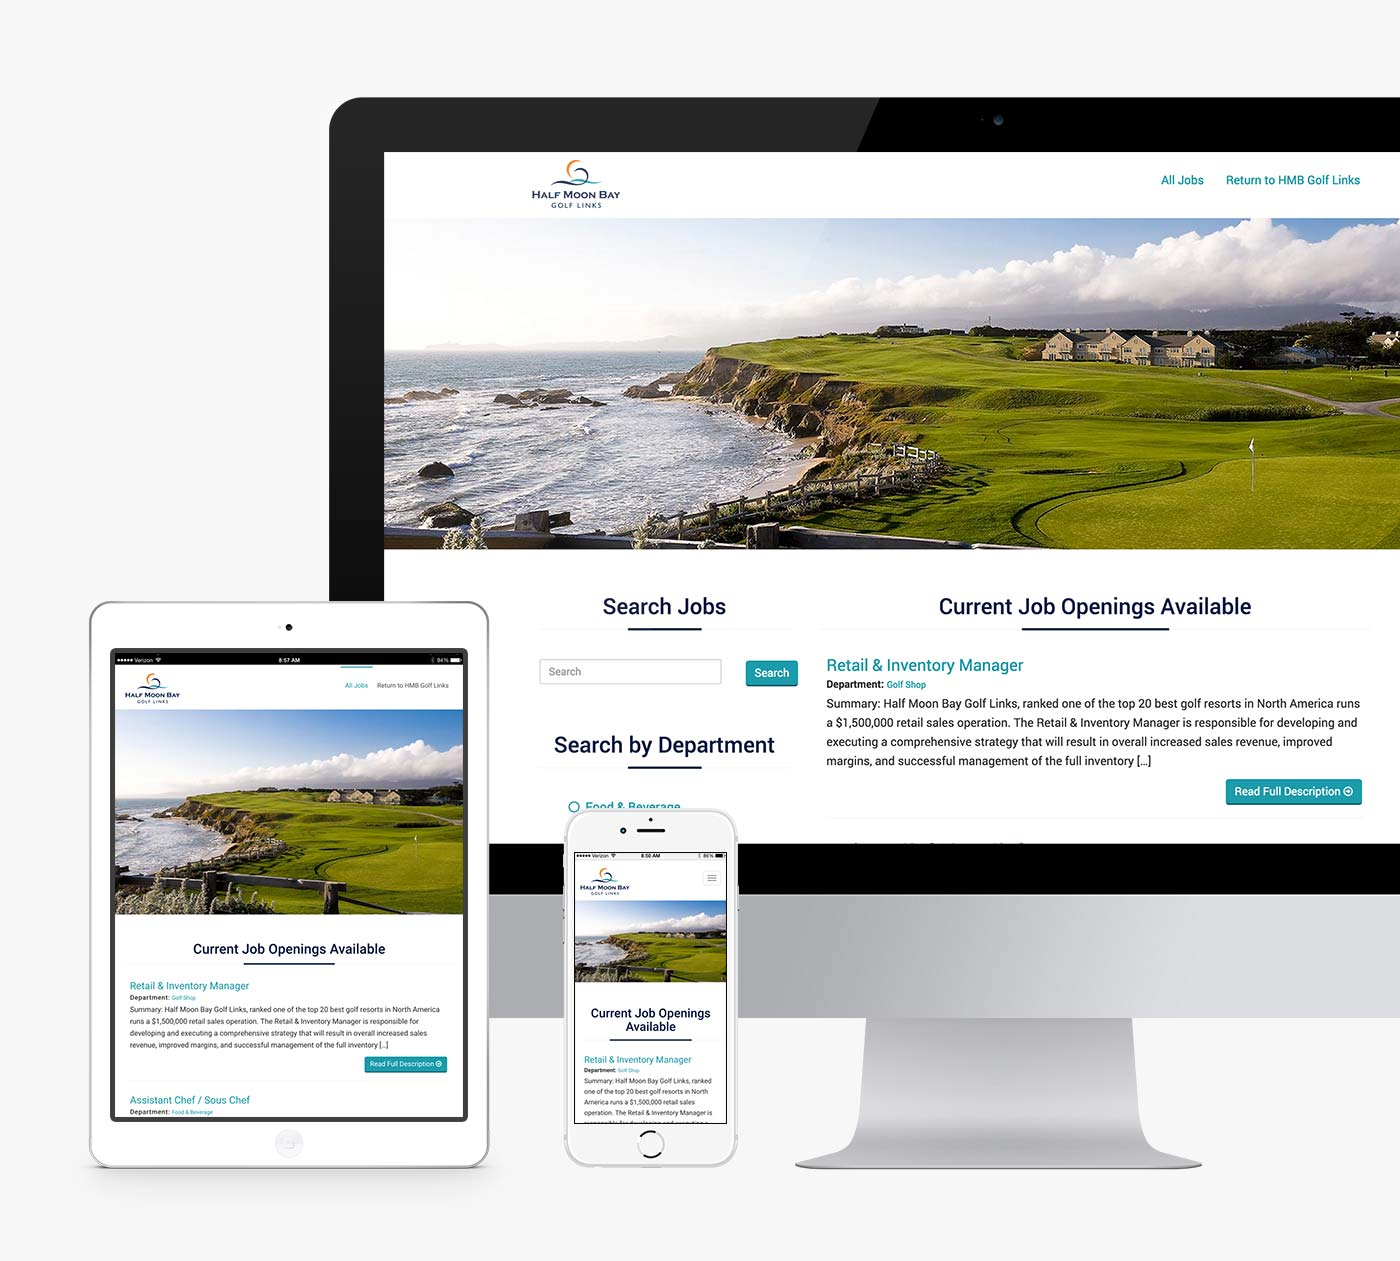 hmb golf links careers website. Resume Example. Resume CV Cover Letter